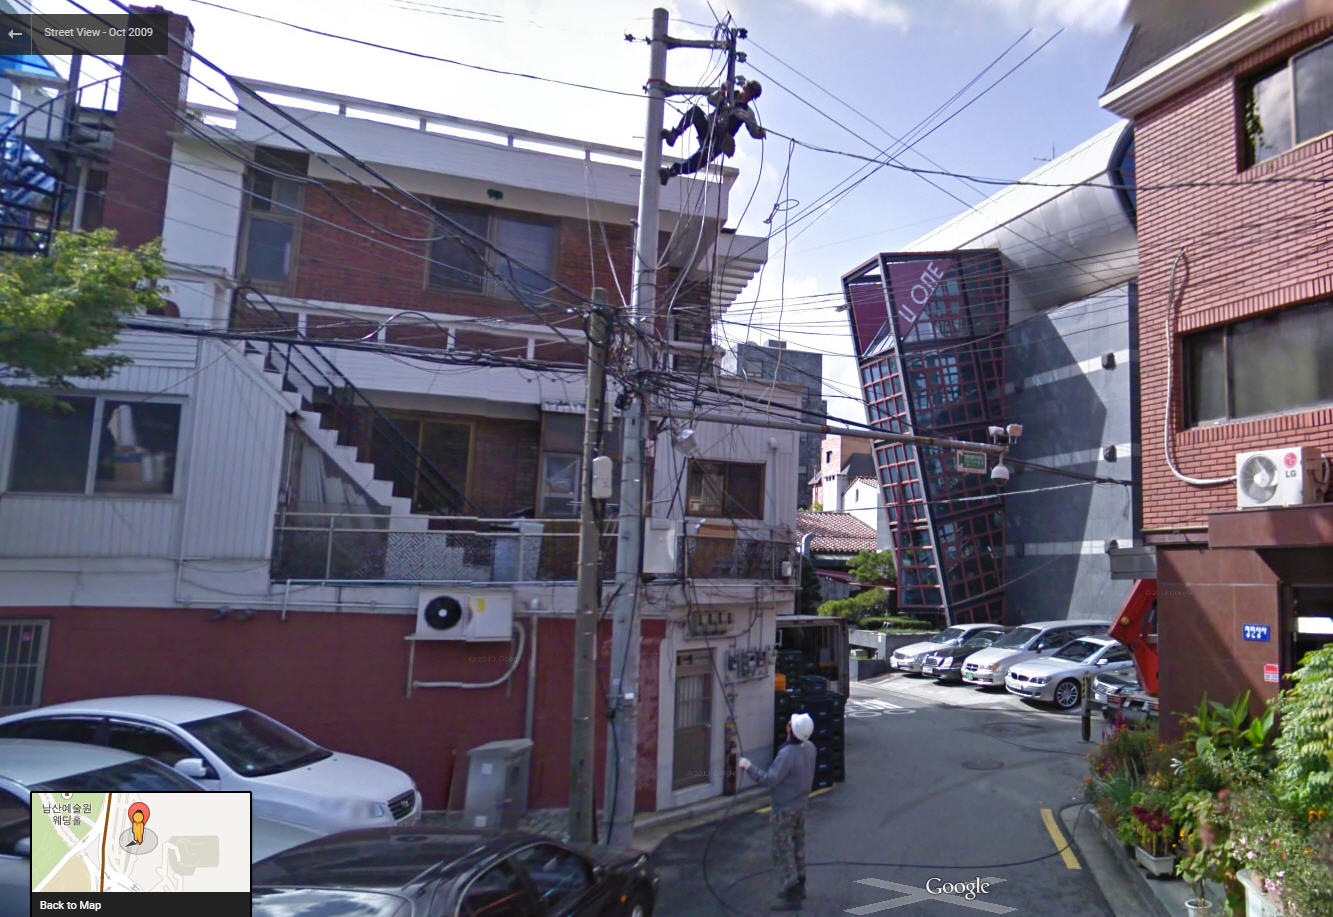 Google Street View captures a bunch of crossed wires